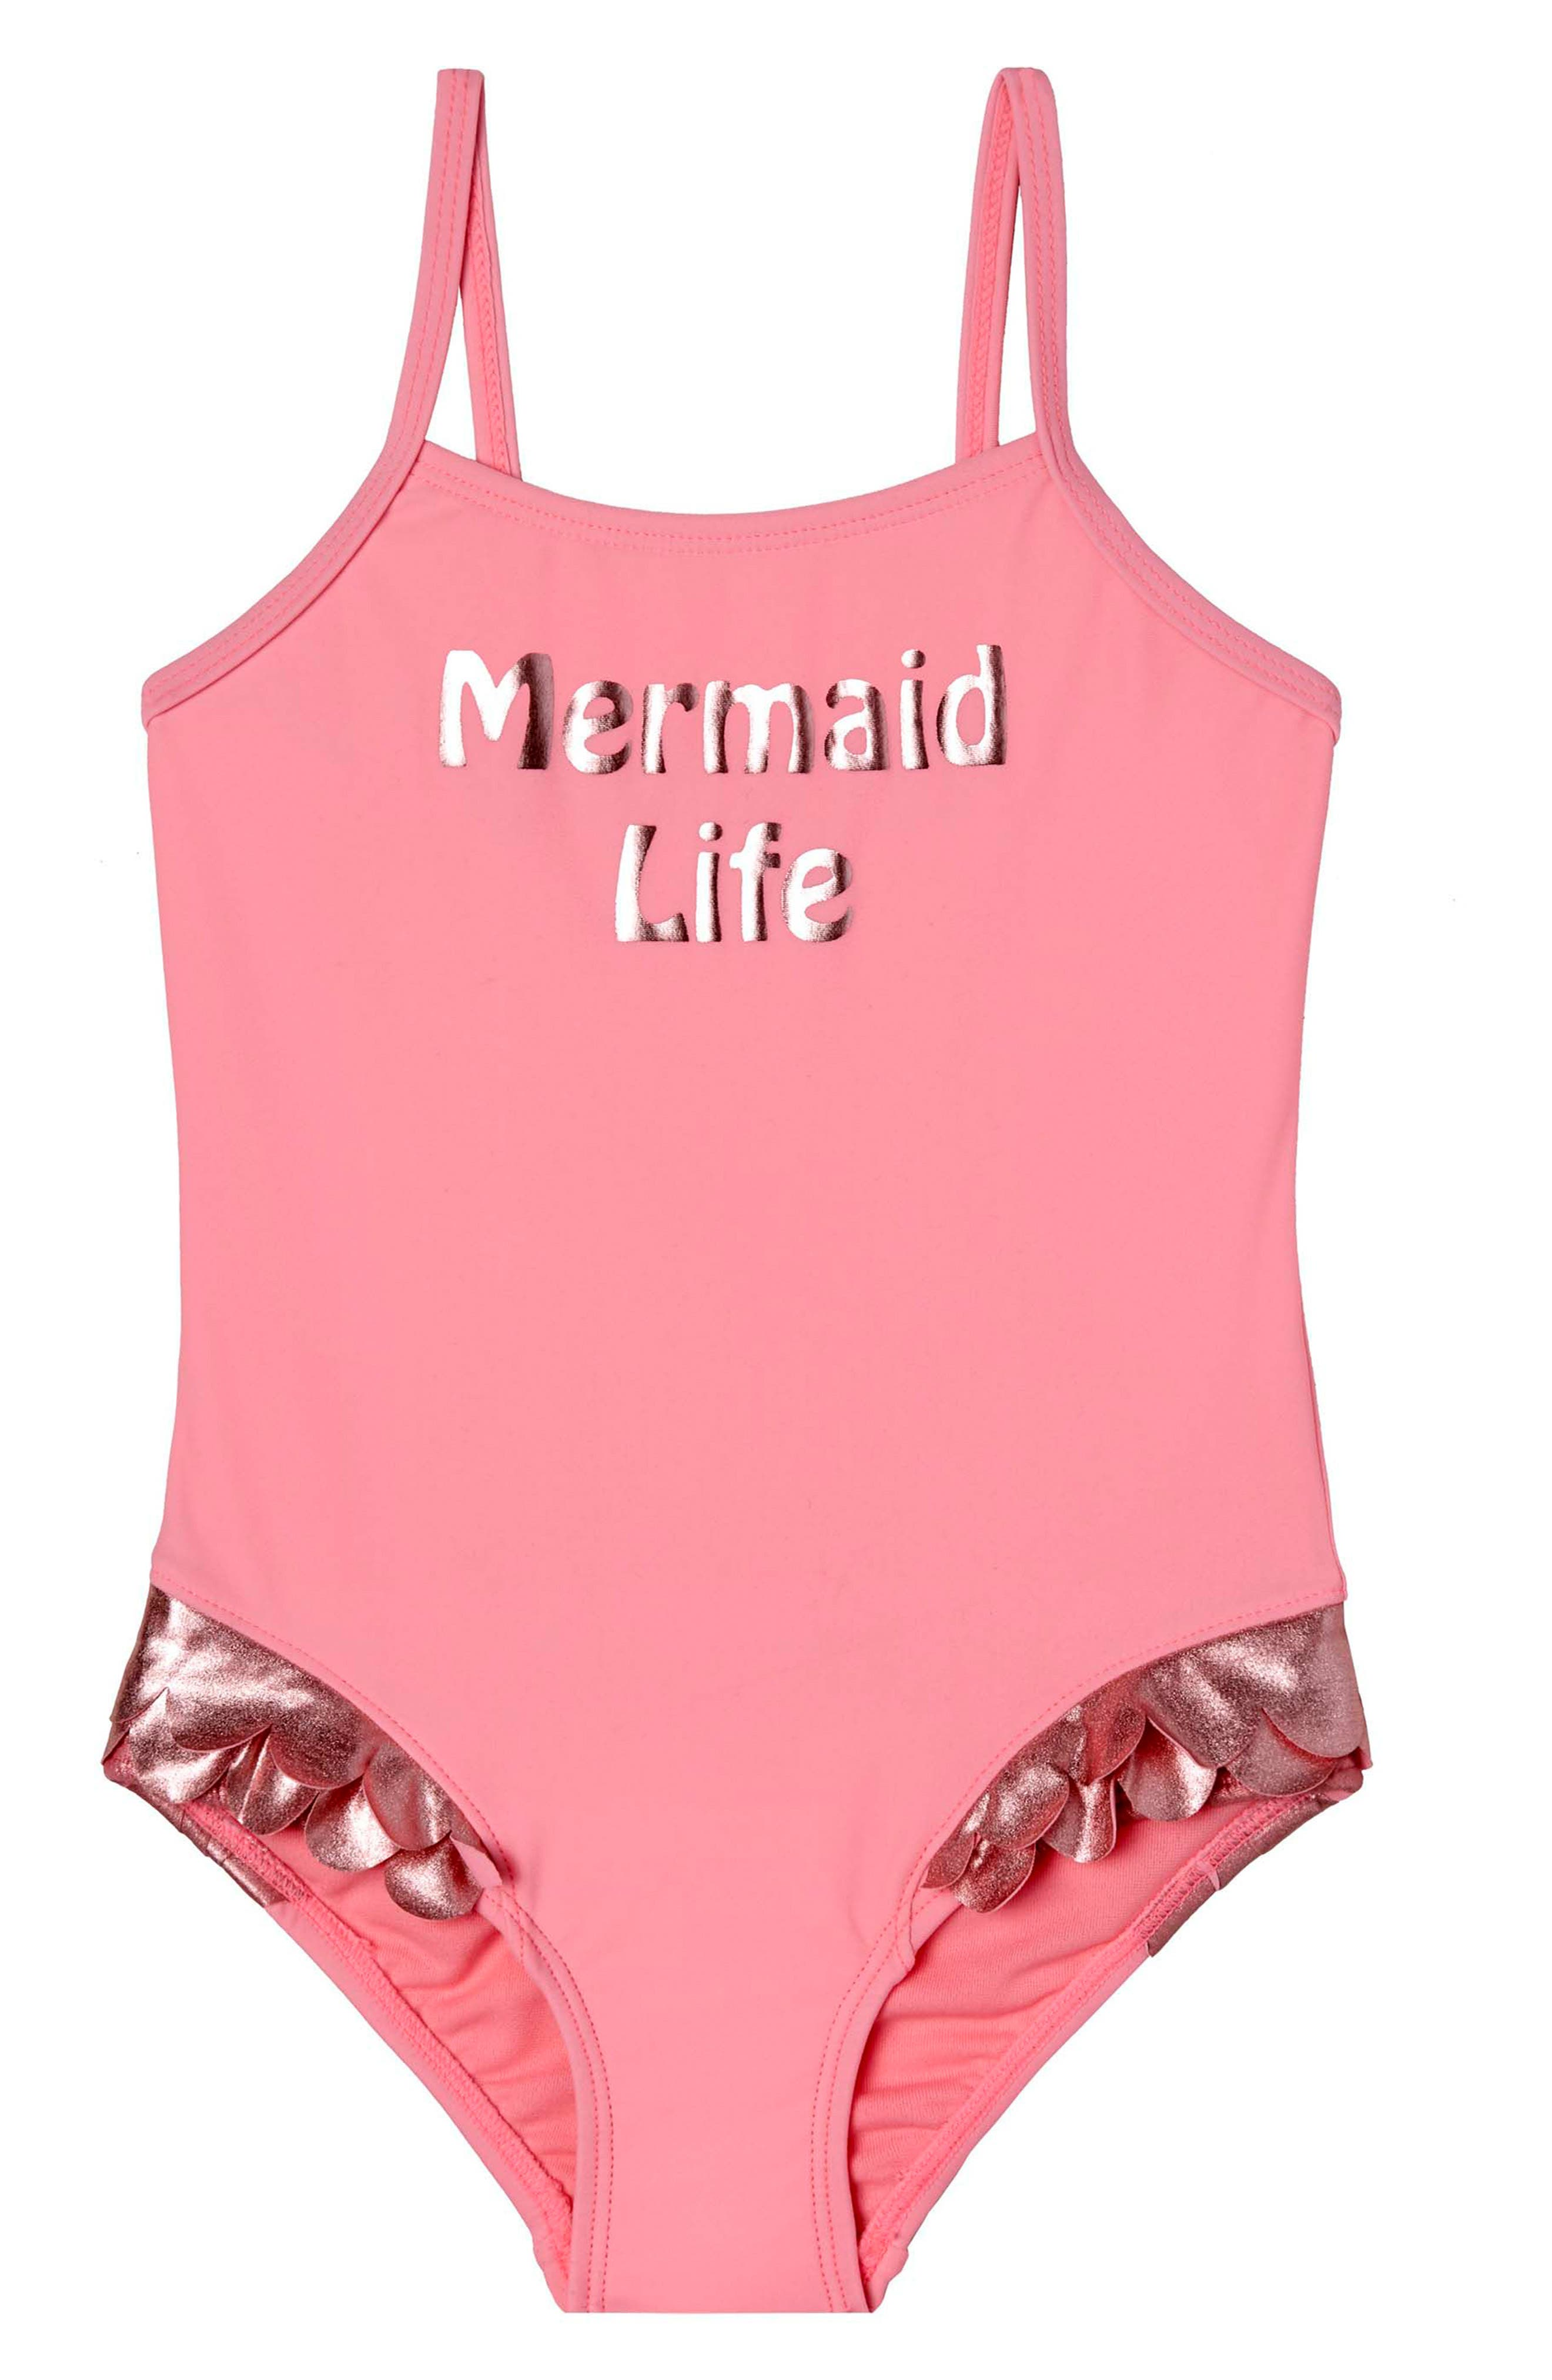 Mermaid Life One-Piece Swimsuit,                             Main thumbnail 1, color,                             Pink